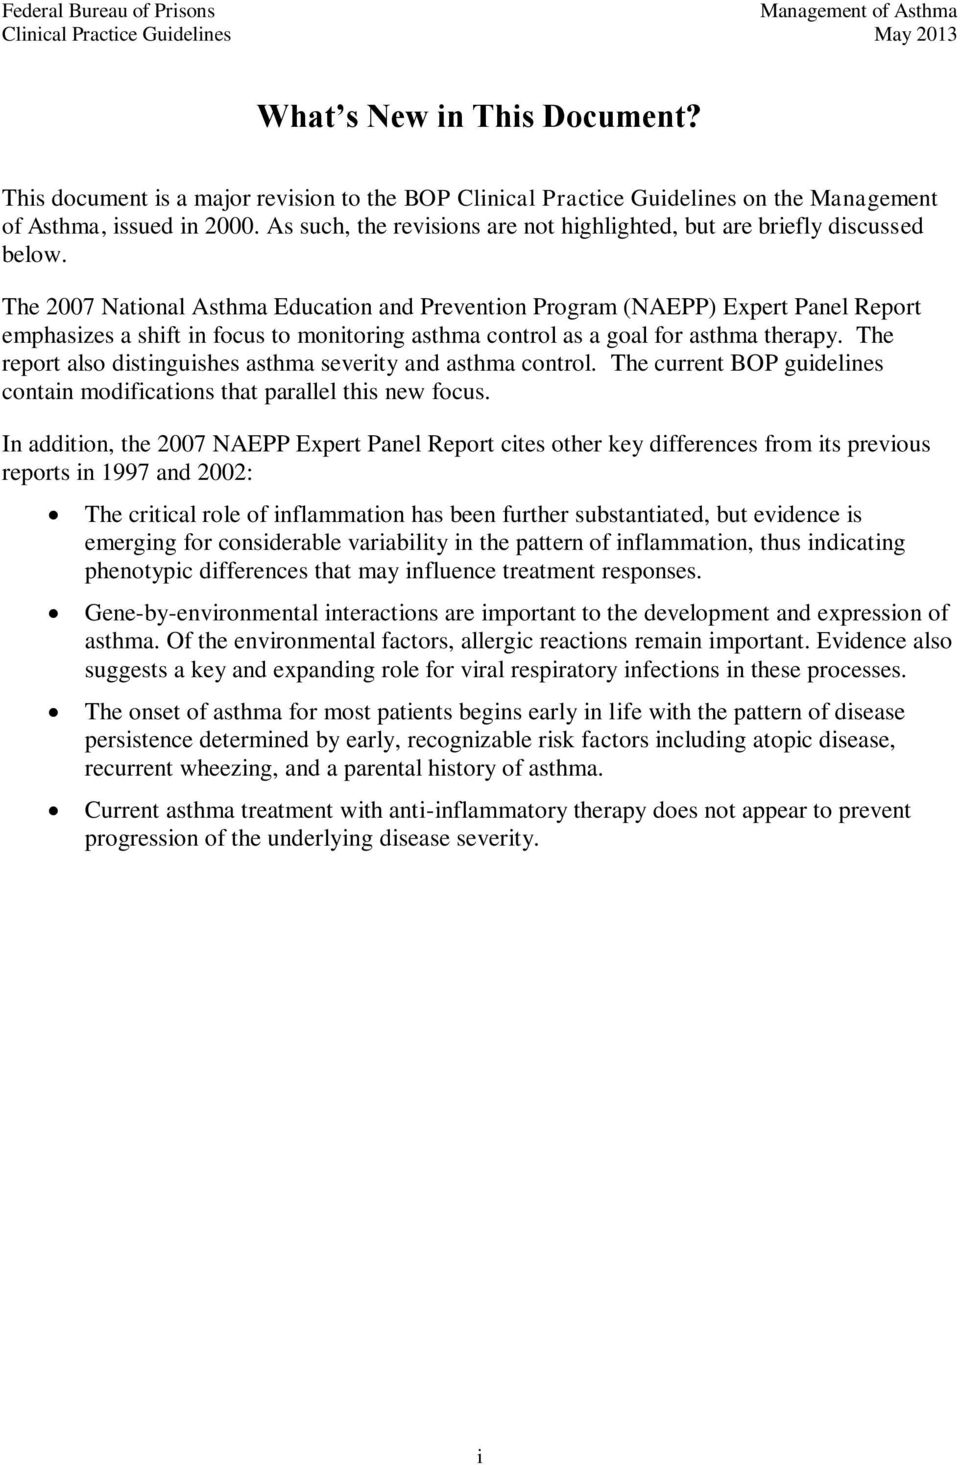 The 2007 National Asthma Education and Prevention Program (NAEPP) Expert Panel Report emphasizes a shift in focus to monitoring asthma control as a goal for asthma therapy.